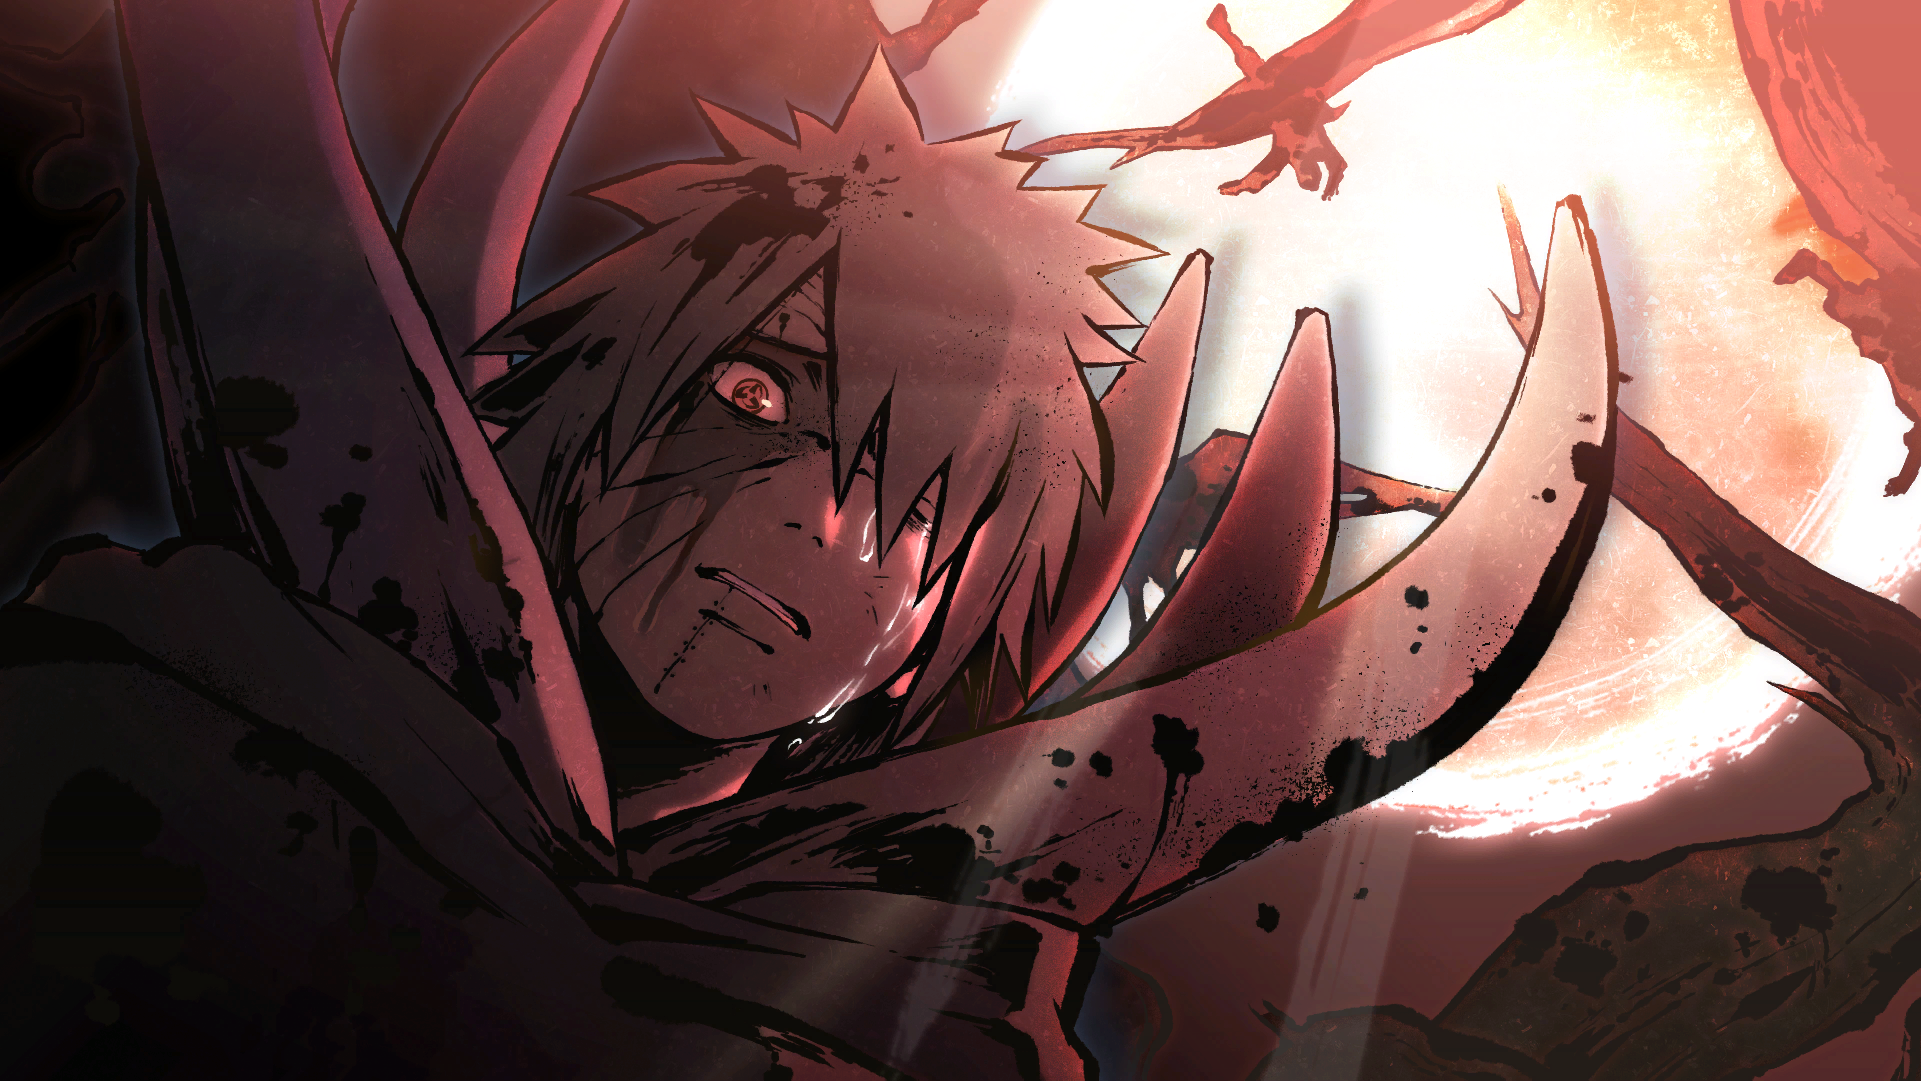 In Hell Storm 4 By Maxiuchiha22 On Deviantart